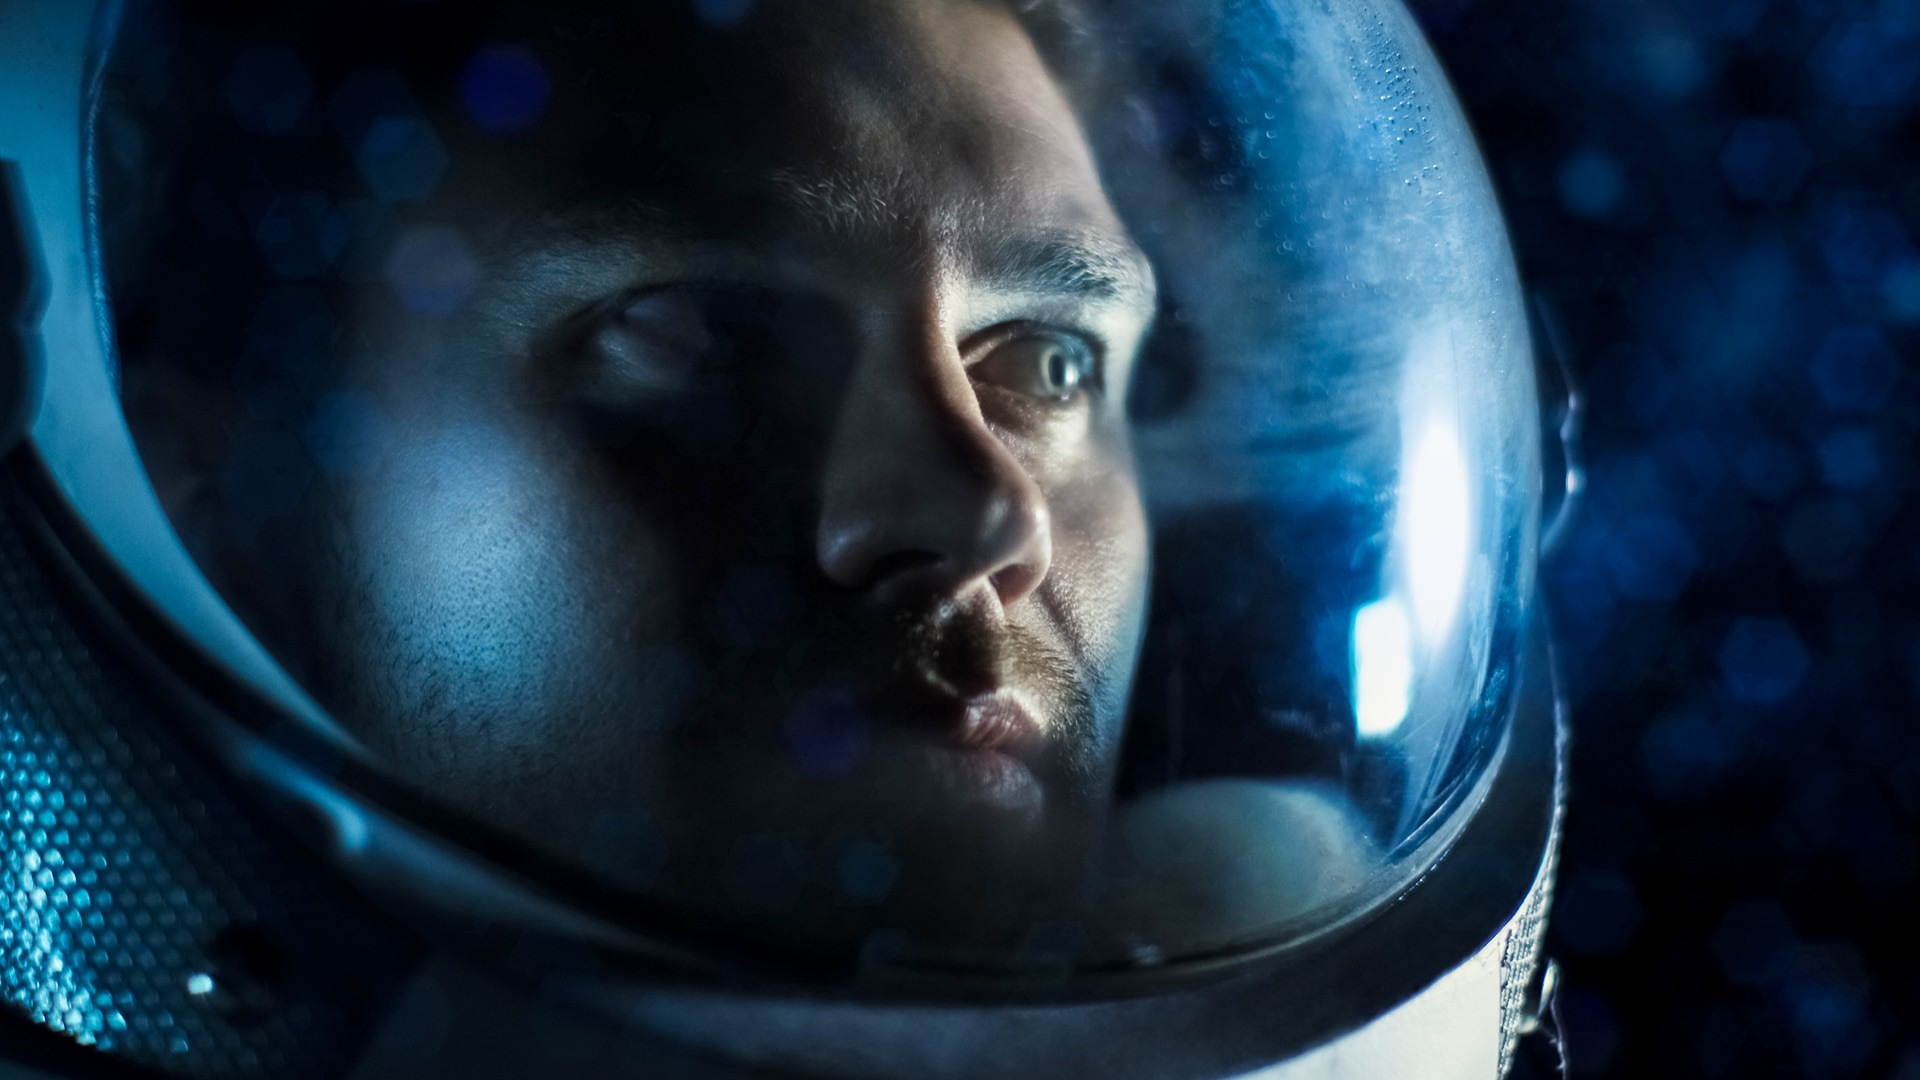 Close up of man in spacesuit